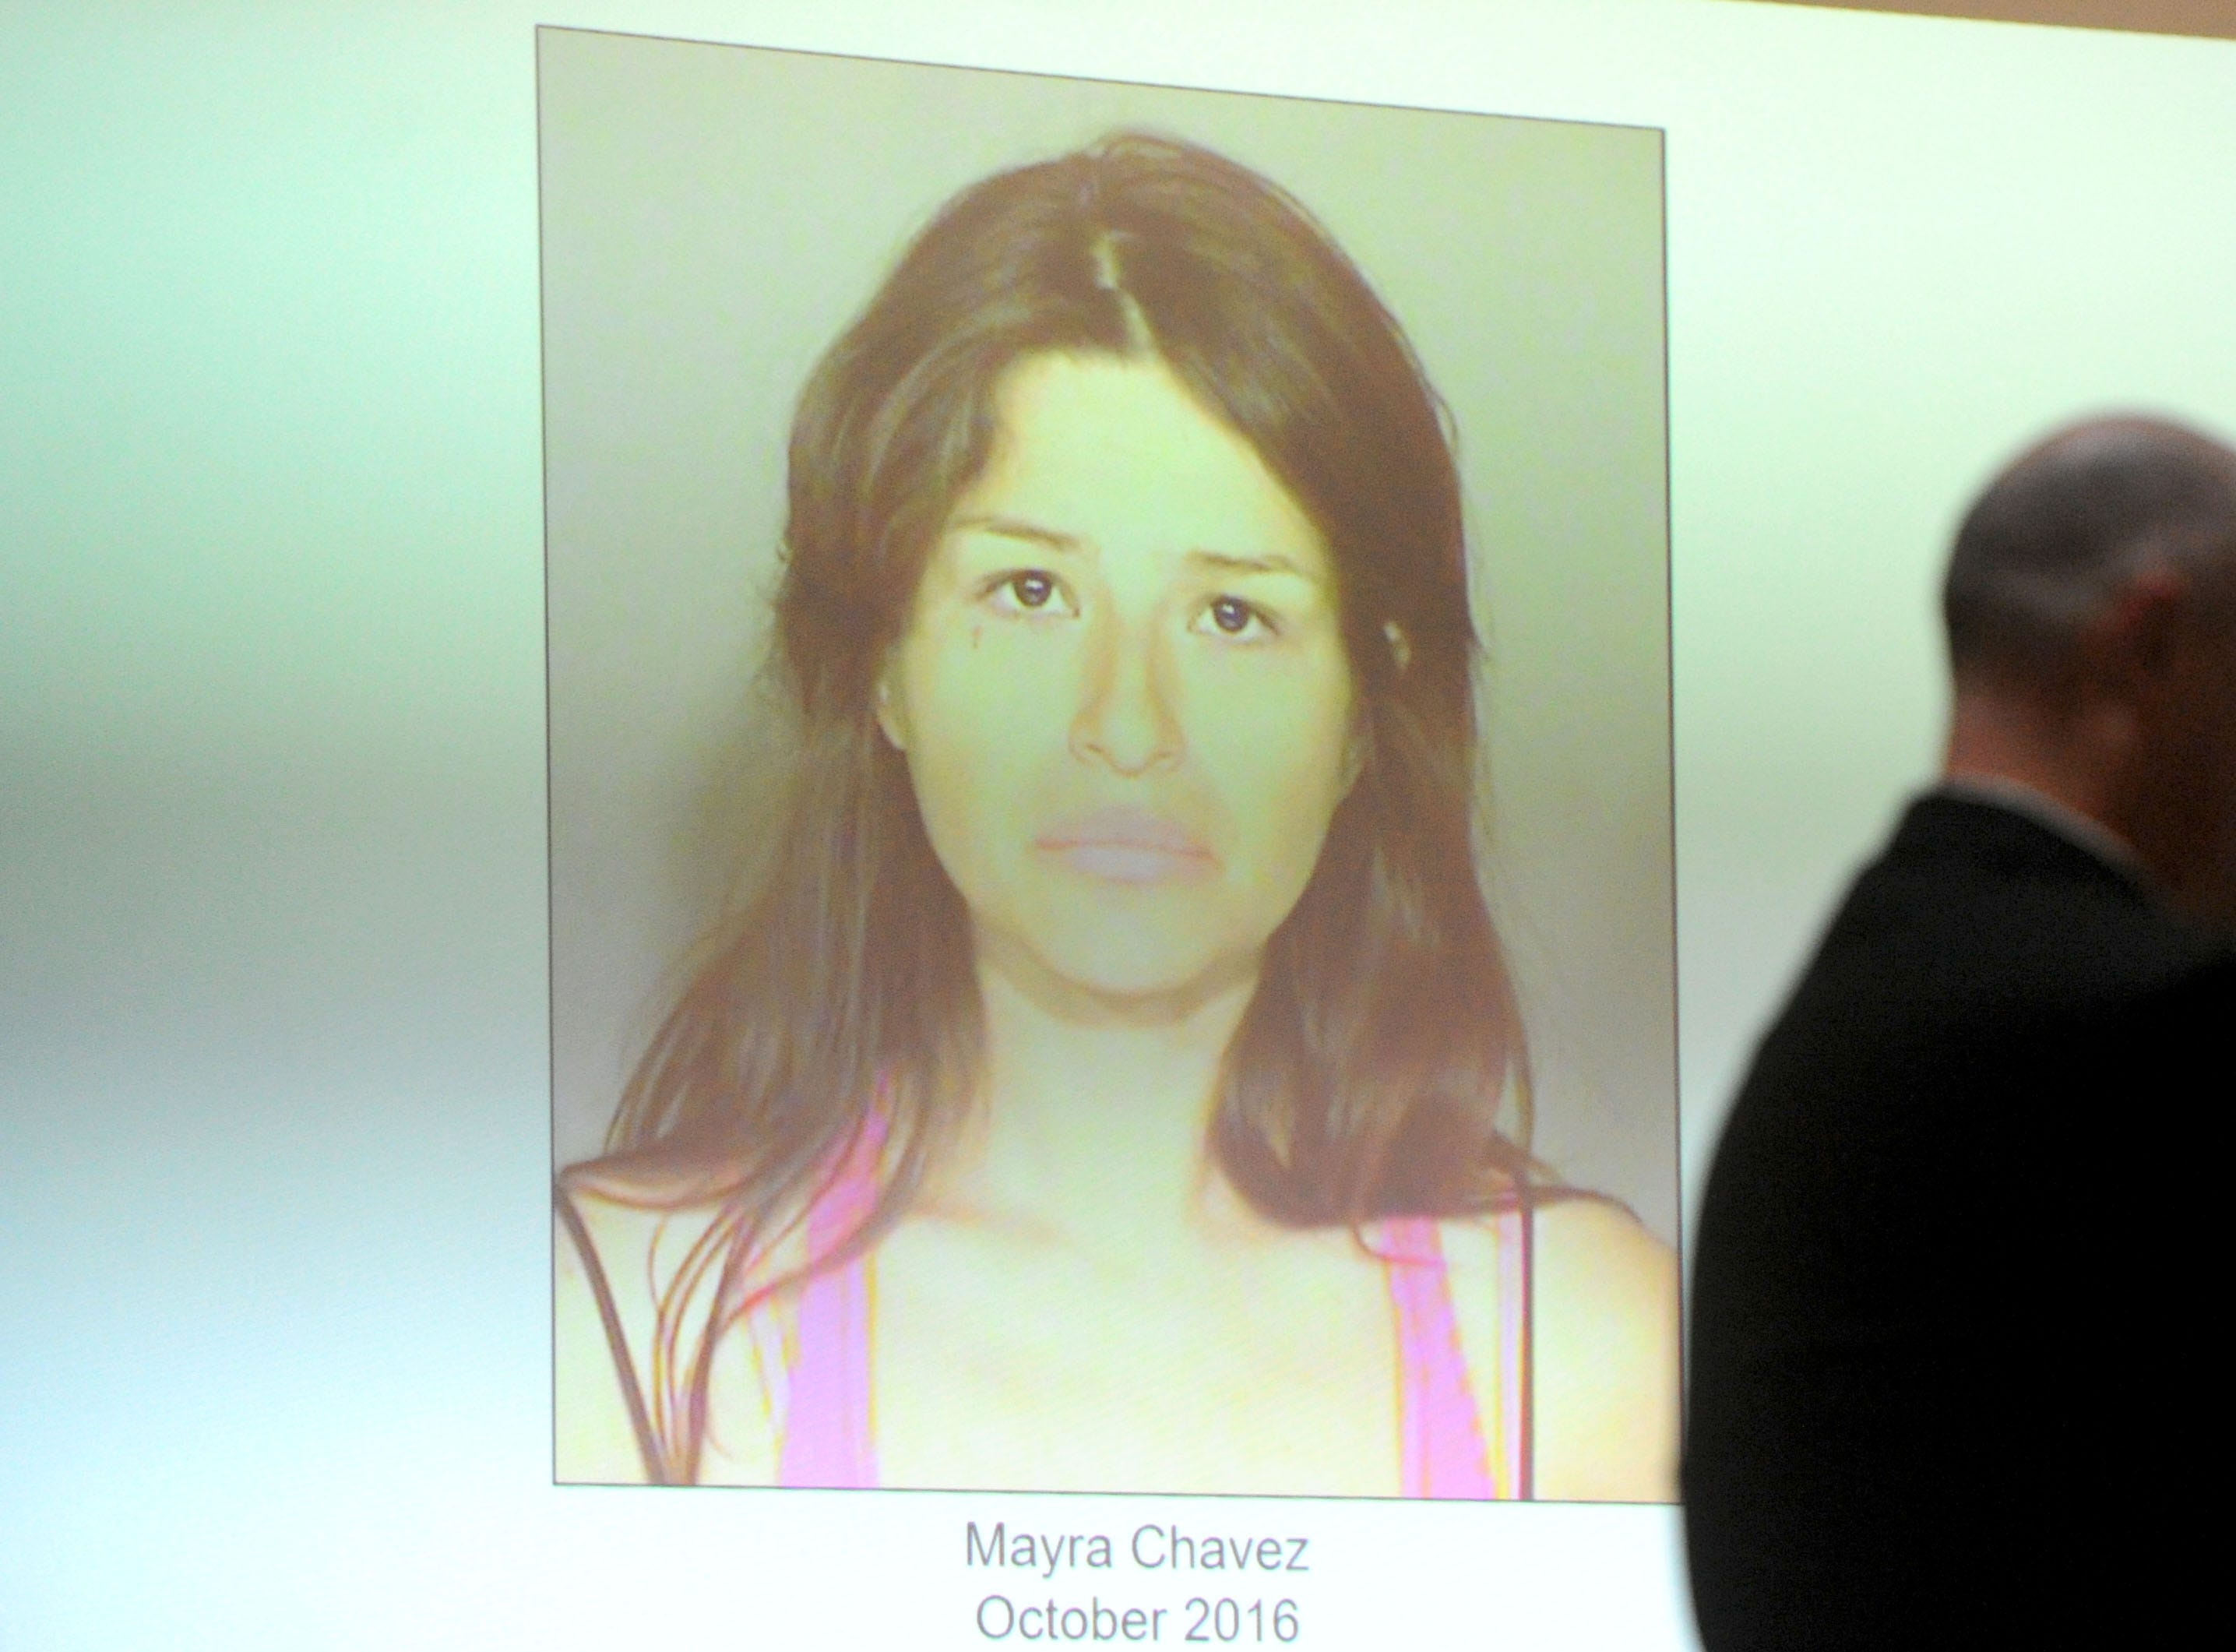 Senior Deputy District Attorney John Barrick shows a photo of Mayra Chavez during opening statements Tuesday in her trial at Ventura County Superior Court. She is accused of killing her 3-year-old daughter Kimberly Lopez who authorities believe to be dead somewhere in Mexico.